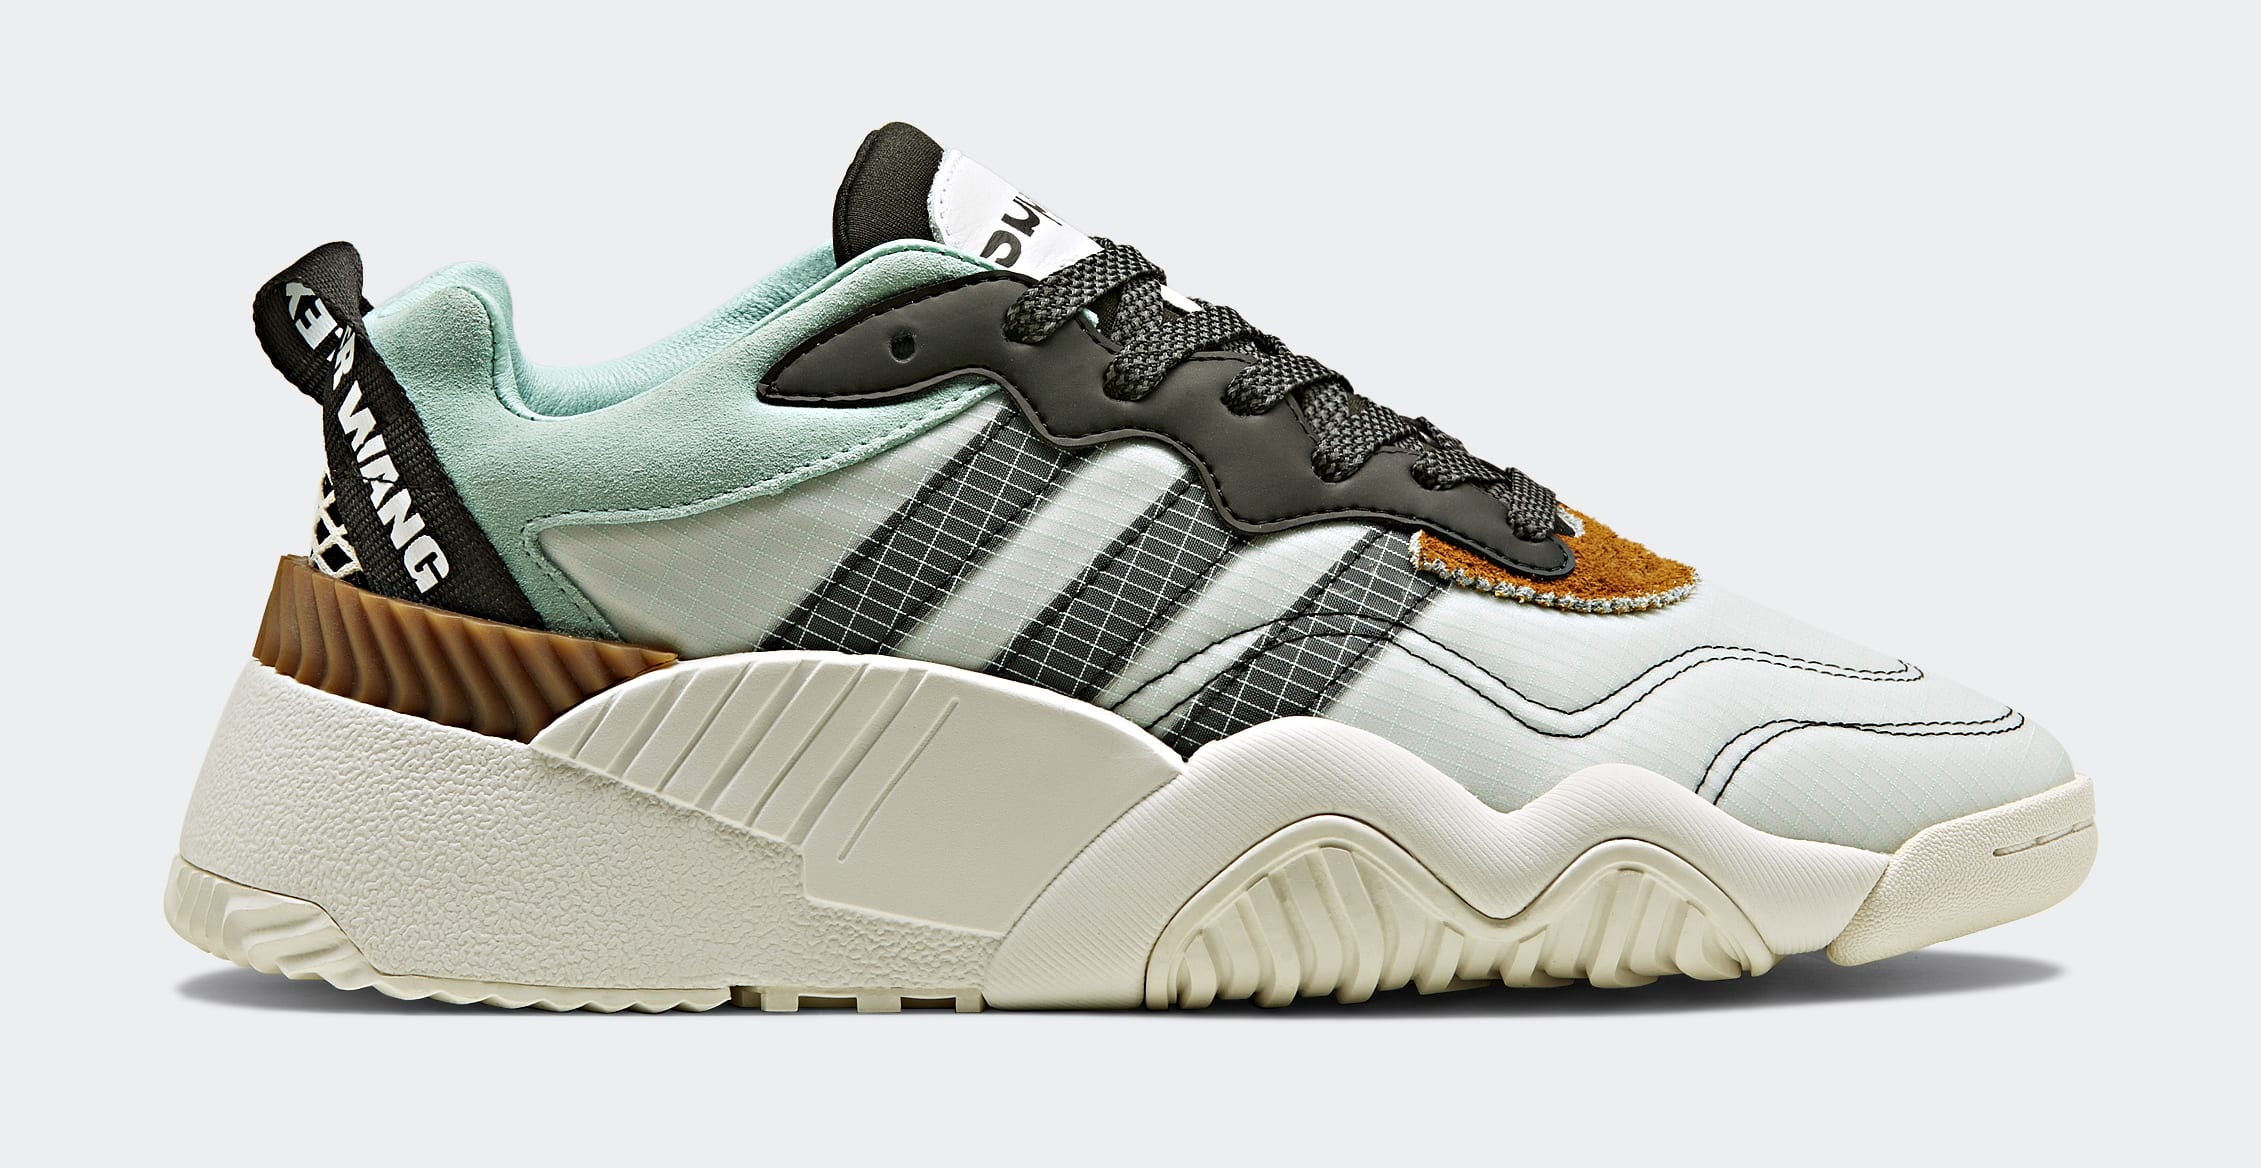 8a0776723bea1 Image via Adidas Alexander Wang x Adidas AW Turnout Trainer (Lateral)